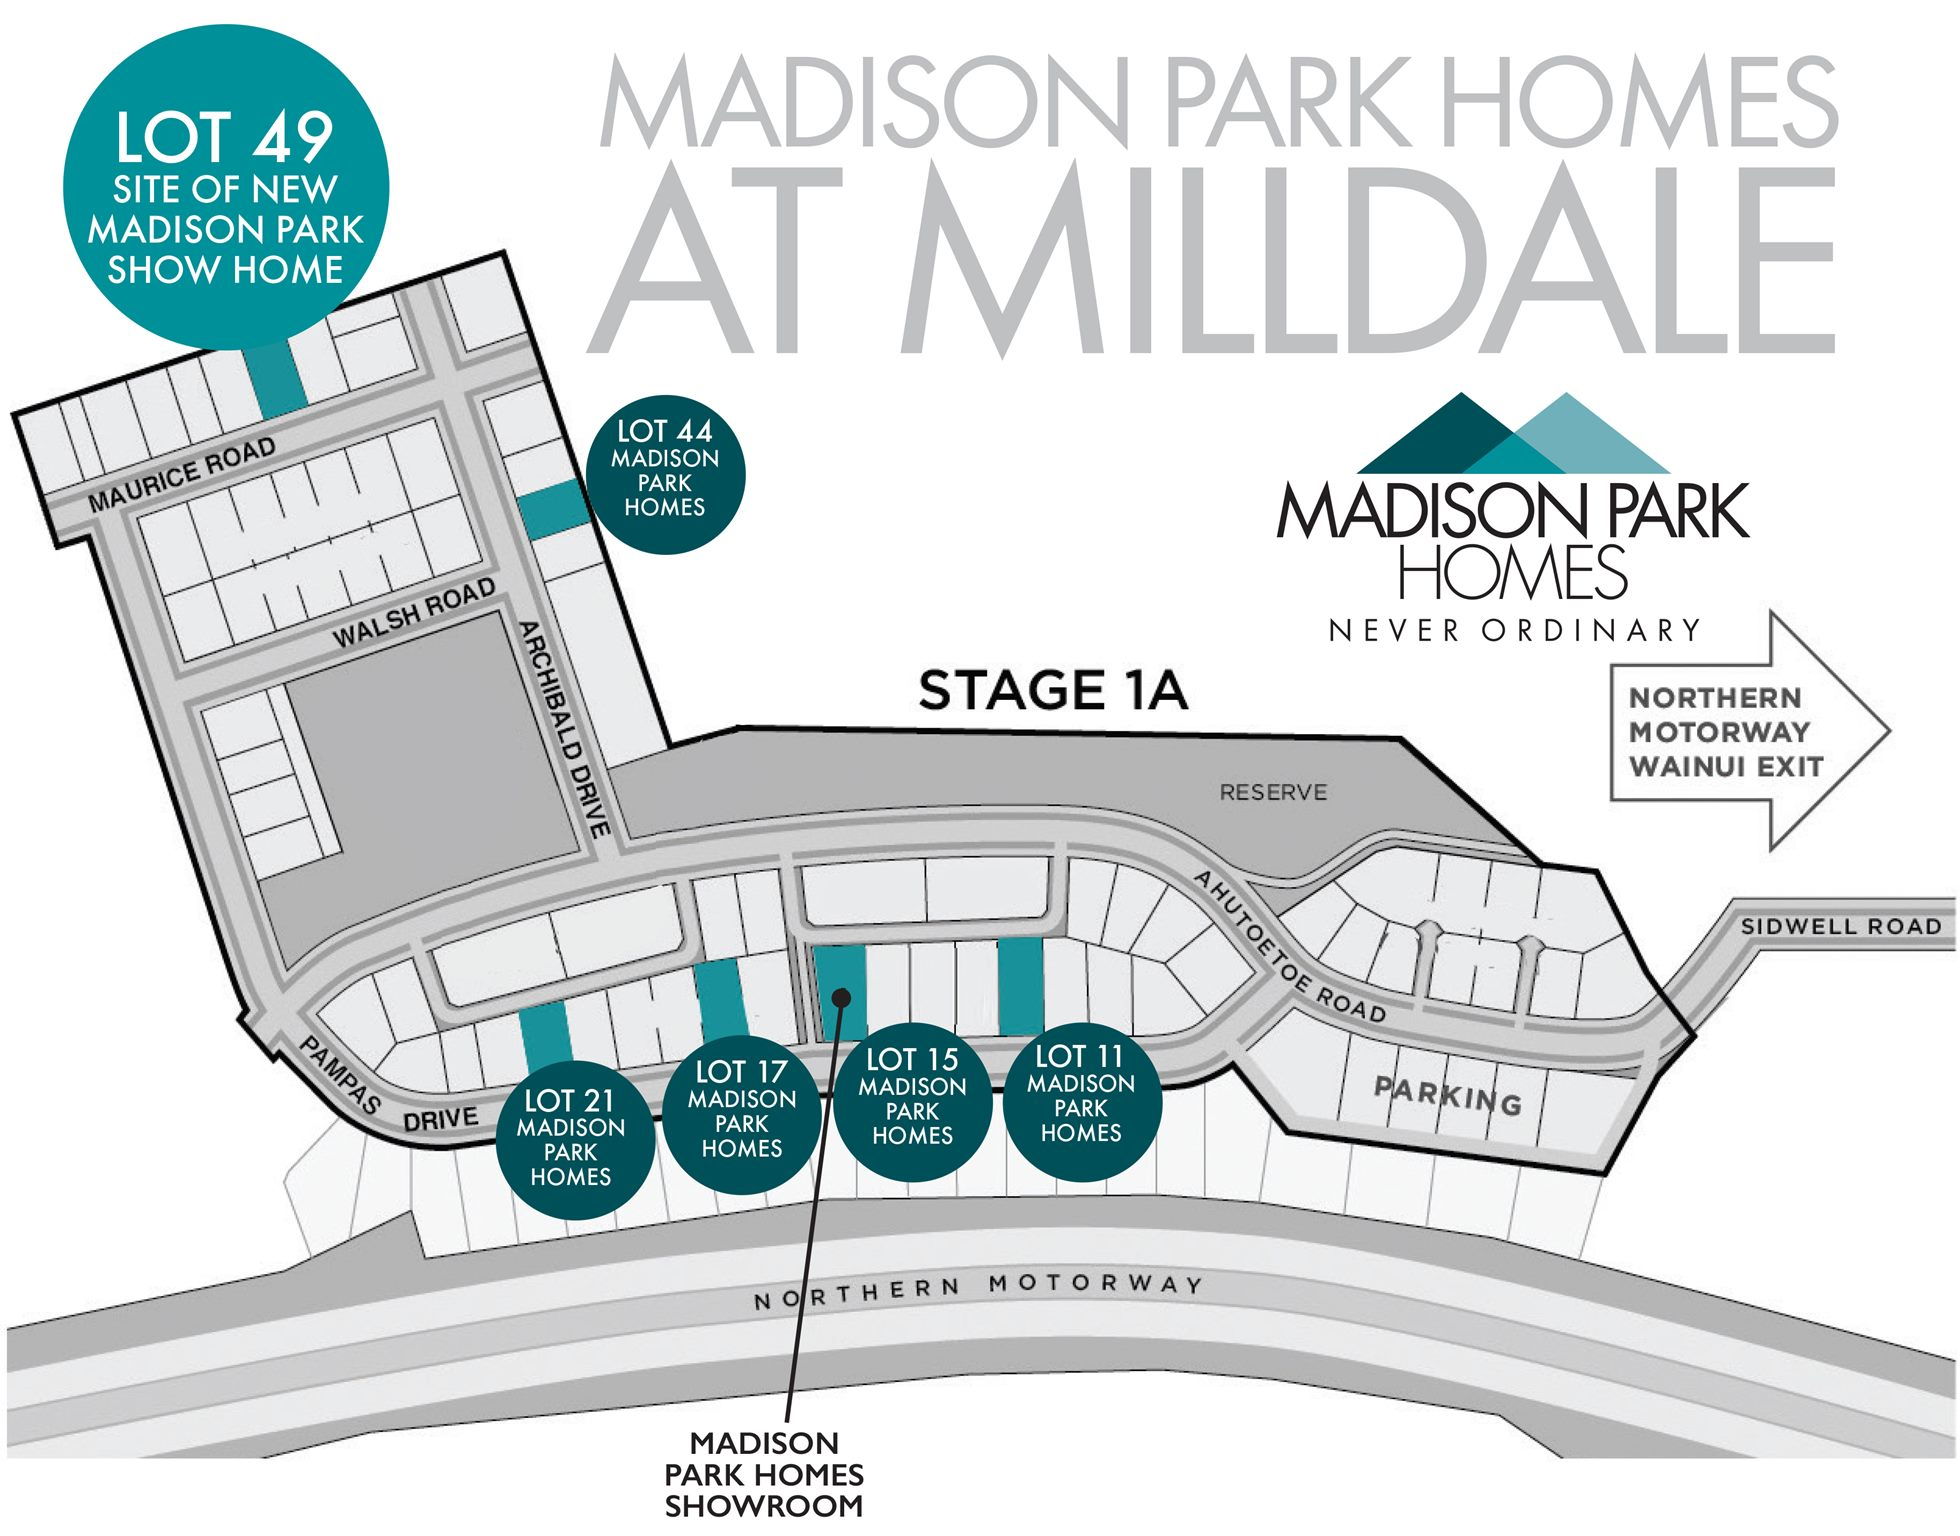 Lot 49, Show Home Investment - Milldale